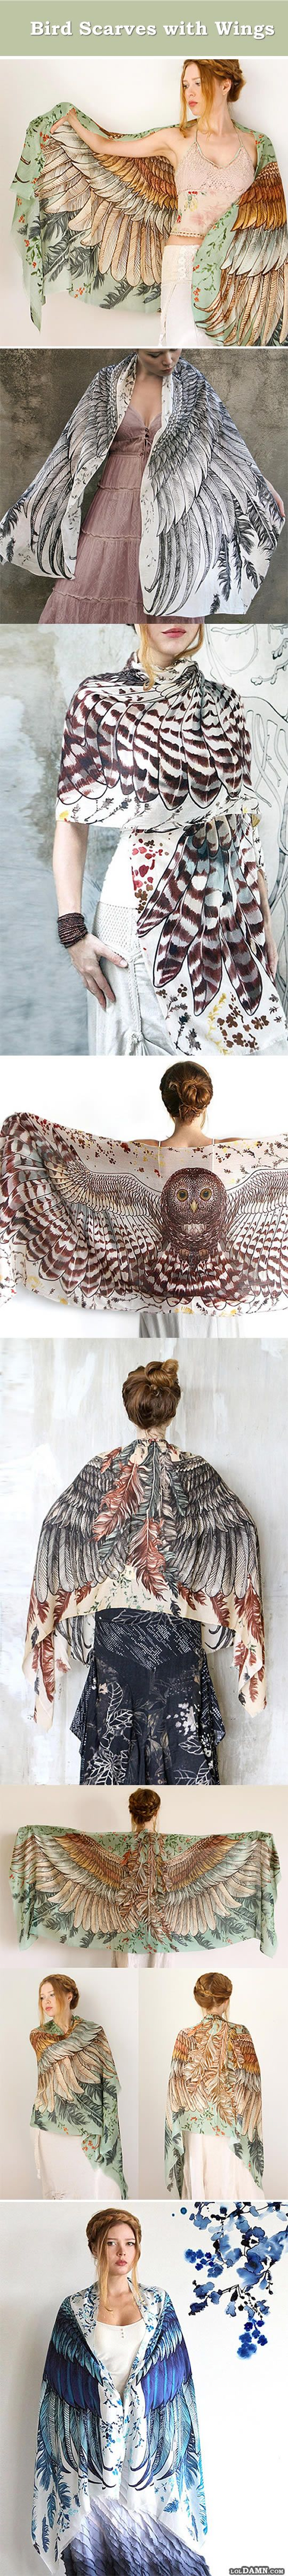 Bird scarves with wings, very old concept beautifully done.